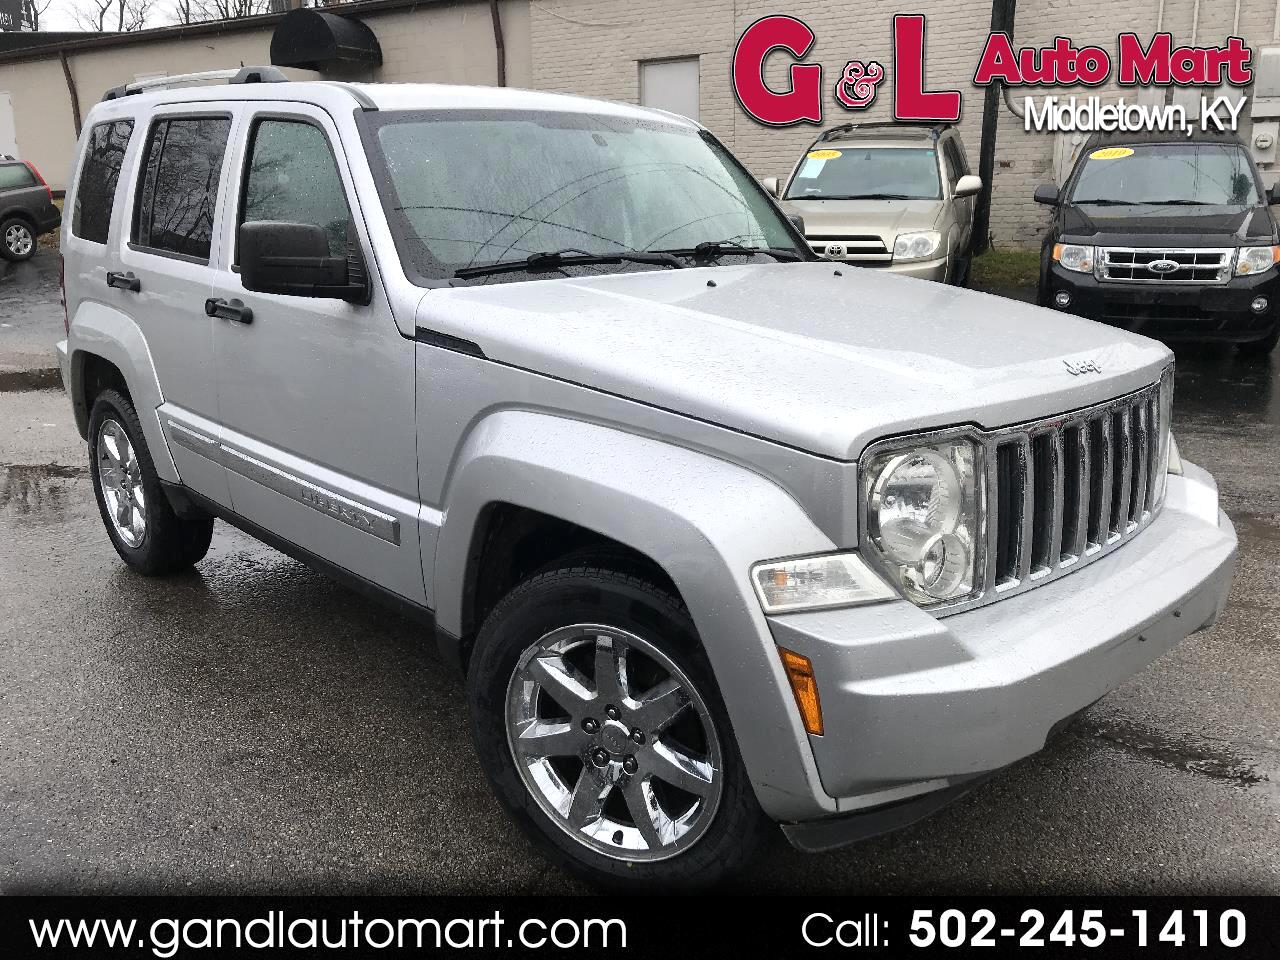 2010 Jeep Liberty 4WD 4dr Limited